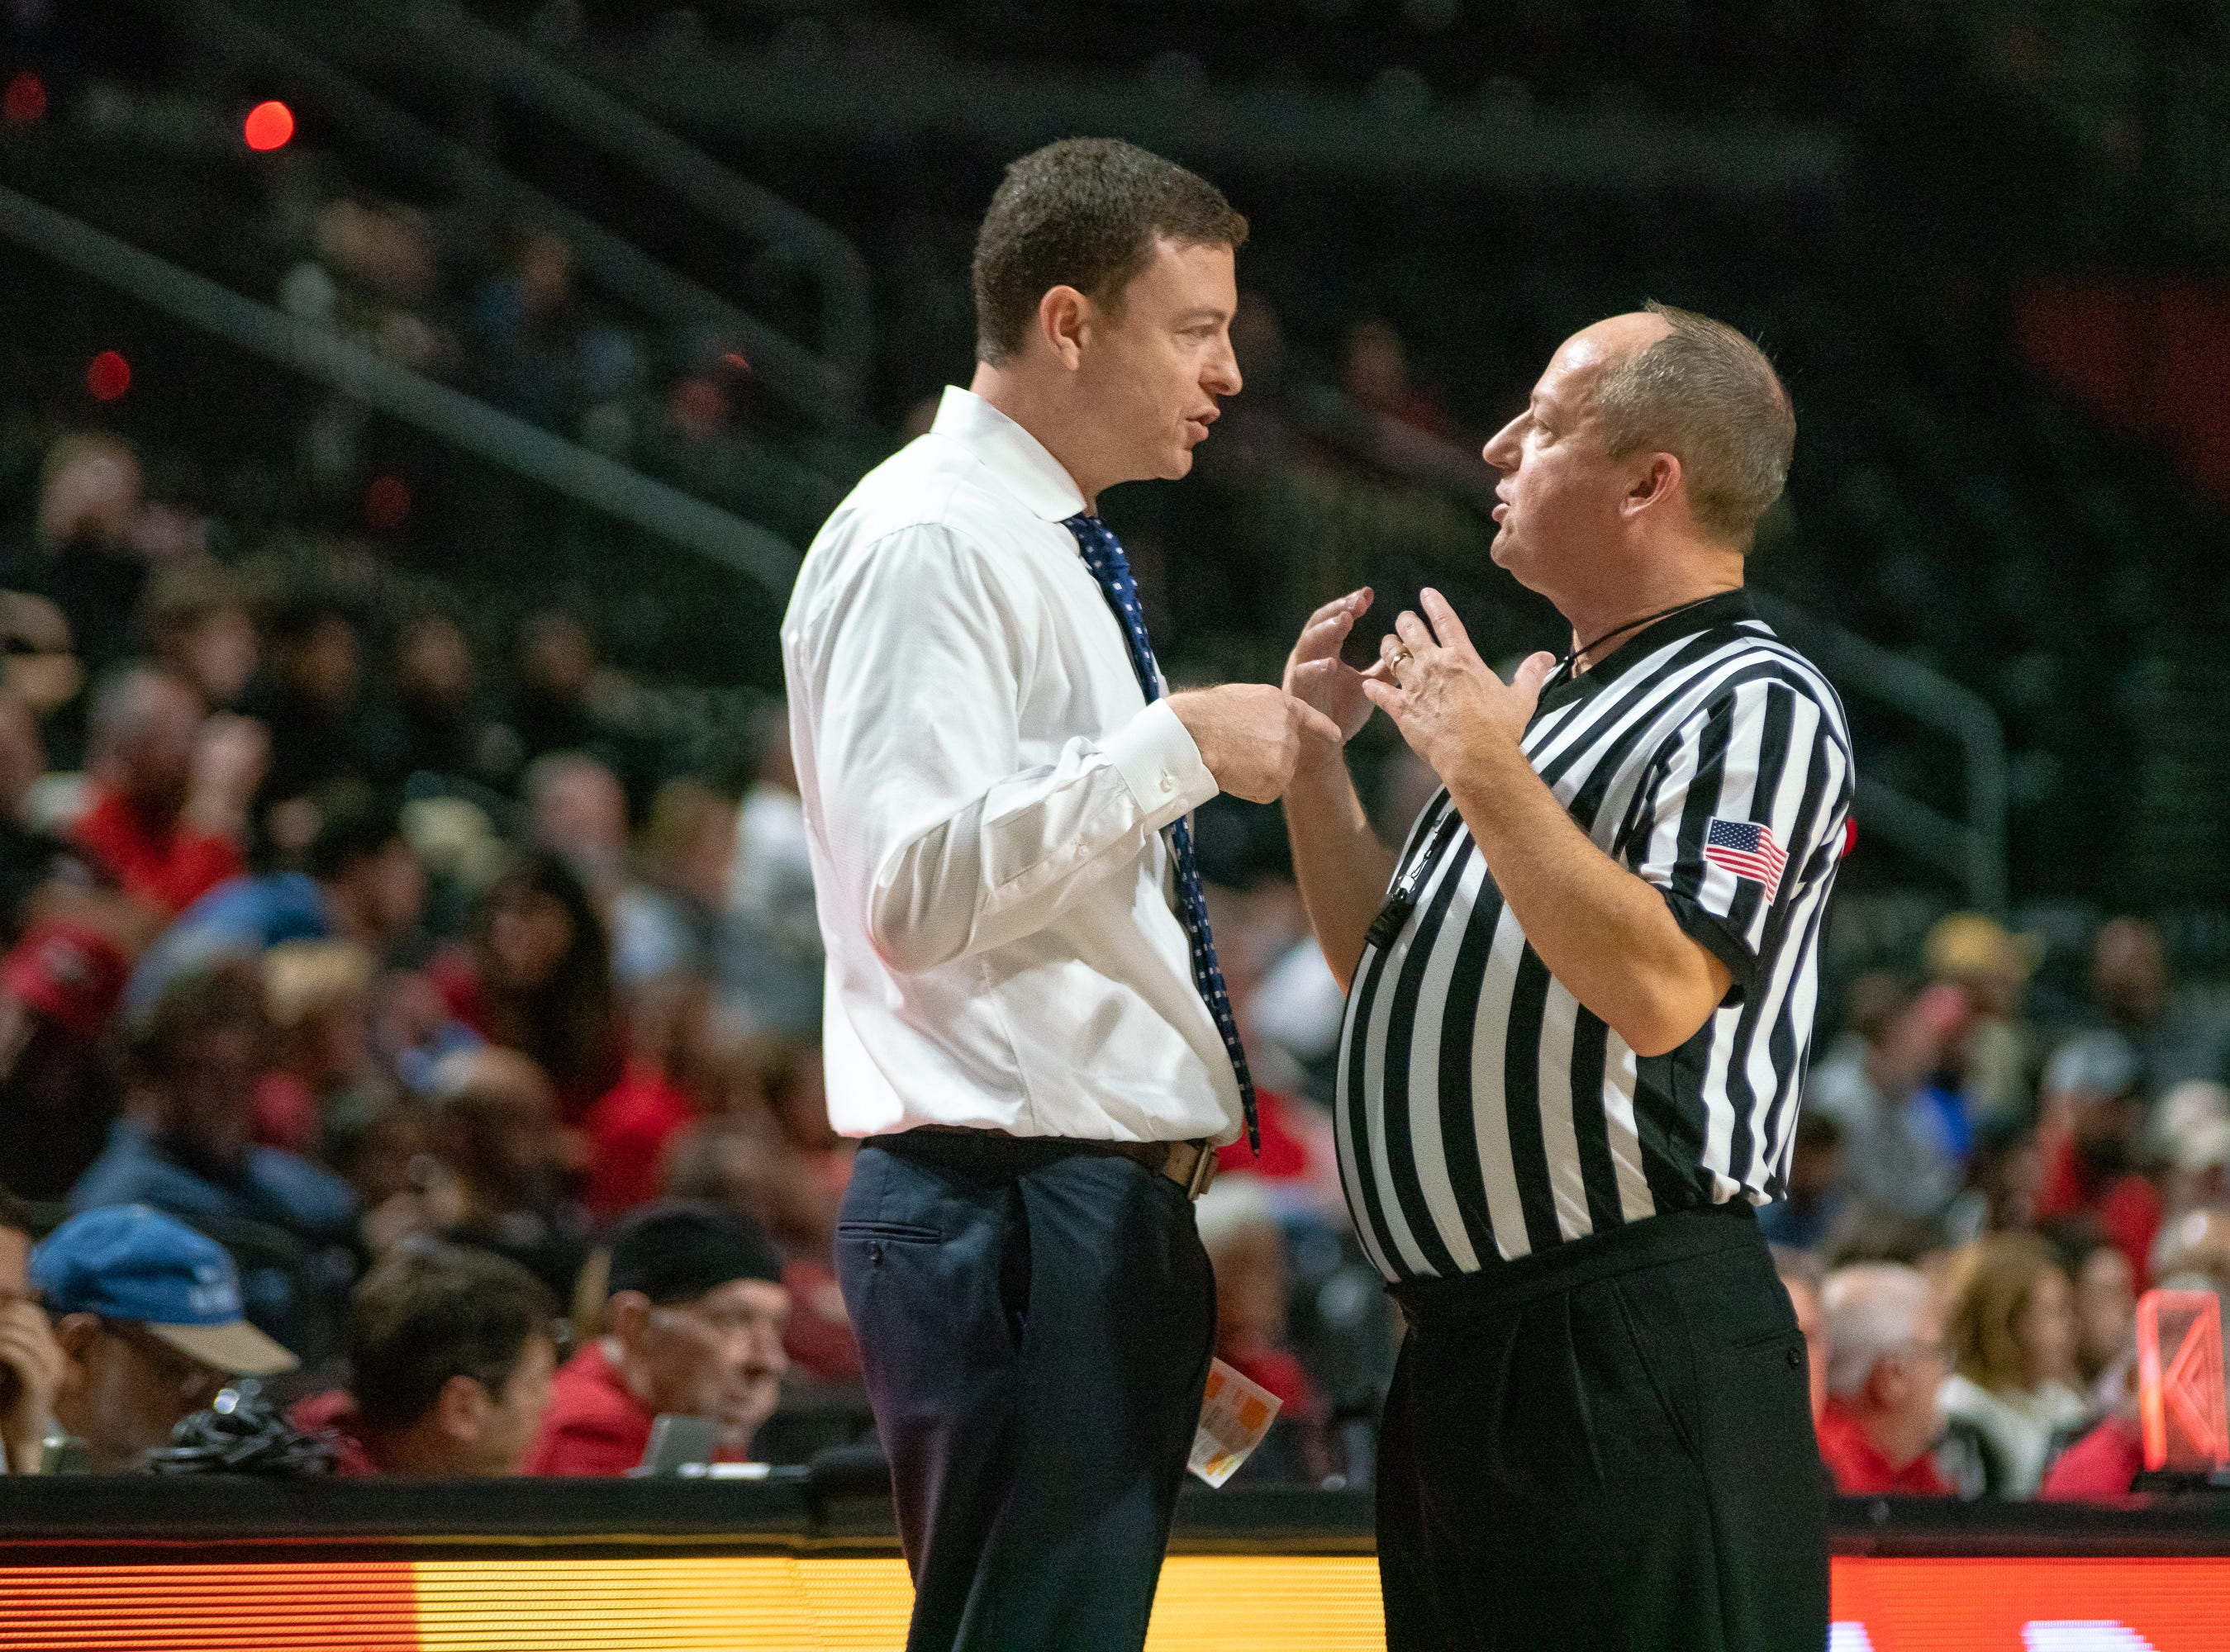 Georgia Southern head basketball coach Mark Byington talks with an official during the game as the Ragin' Cajuns take on the Georgia Southern Eagles at the Cajundome on Feb. 6, 2019.